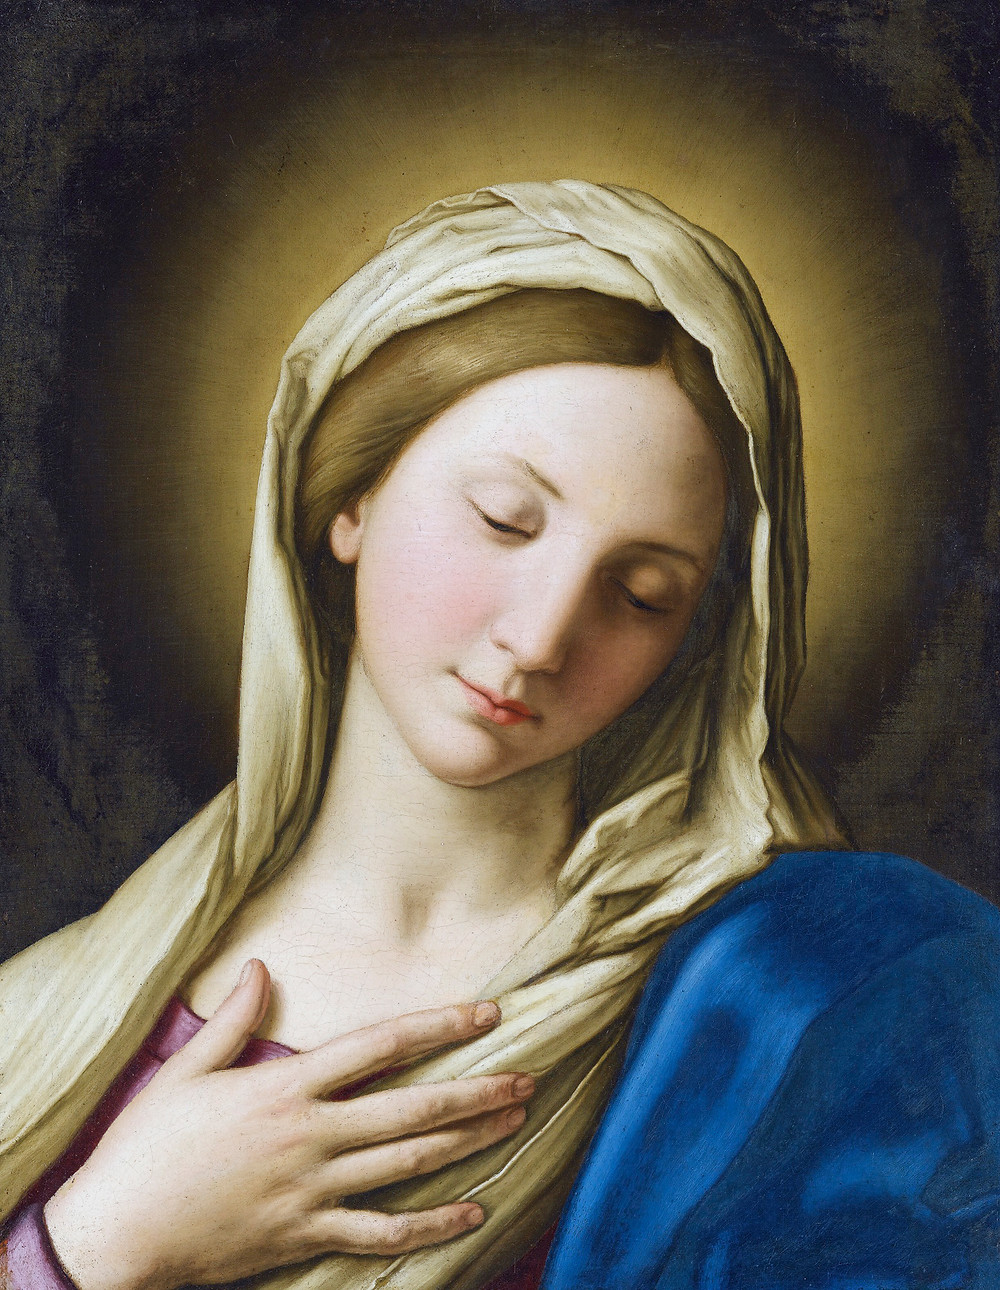 Blessed Virgin Mary Immaculate Conception. Gibraltar Catholic Youth.